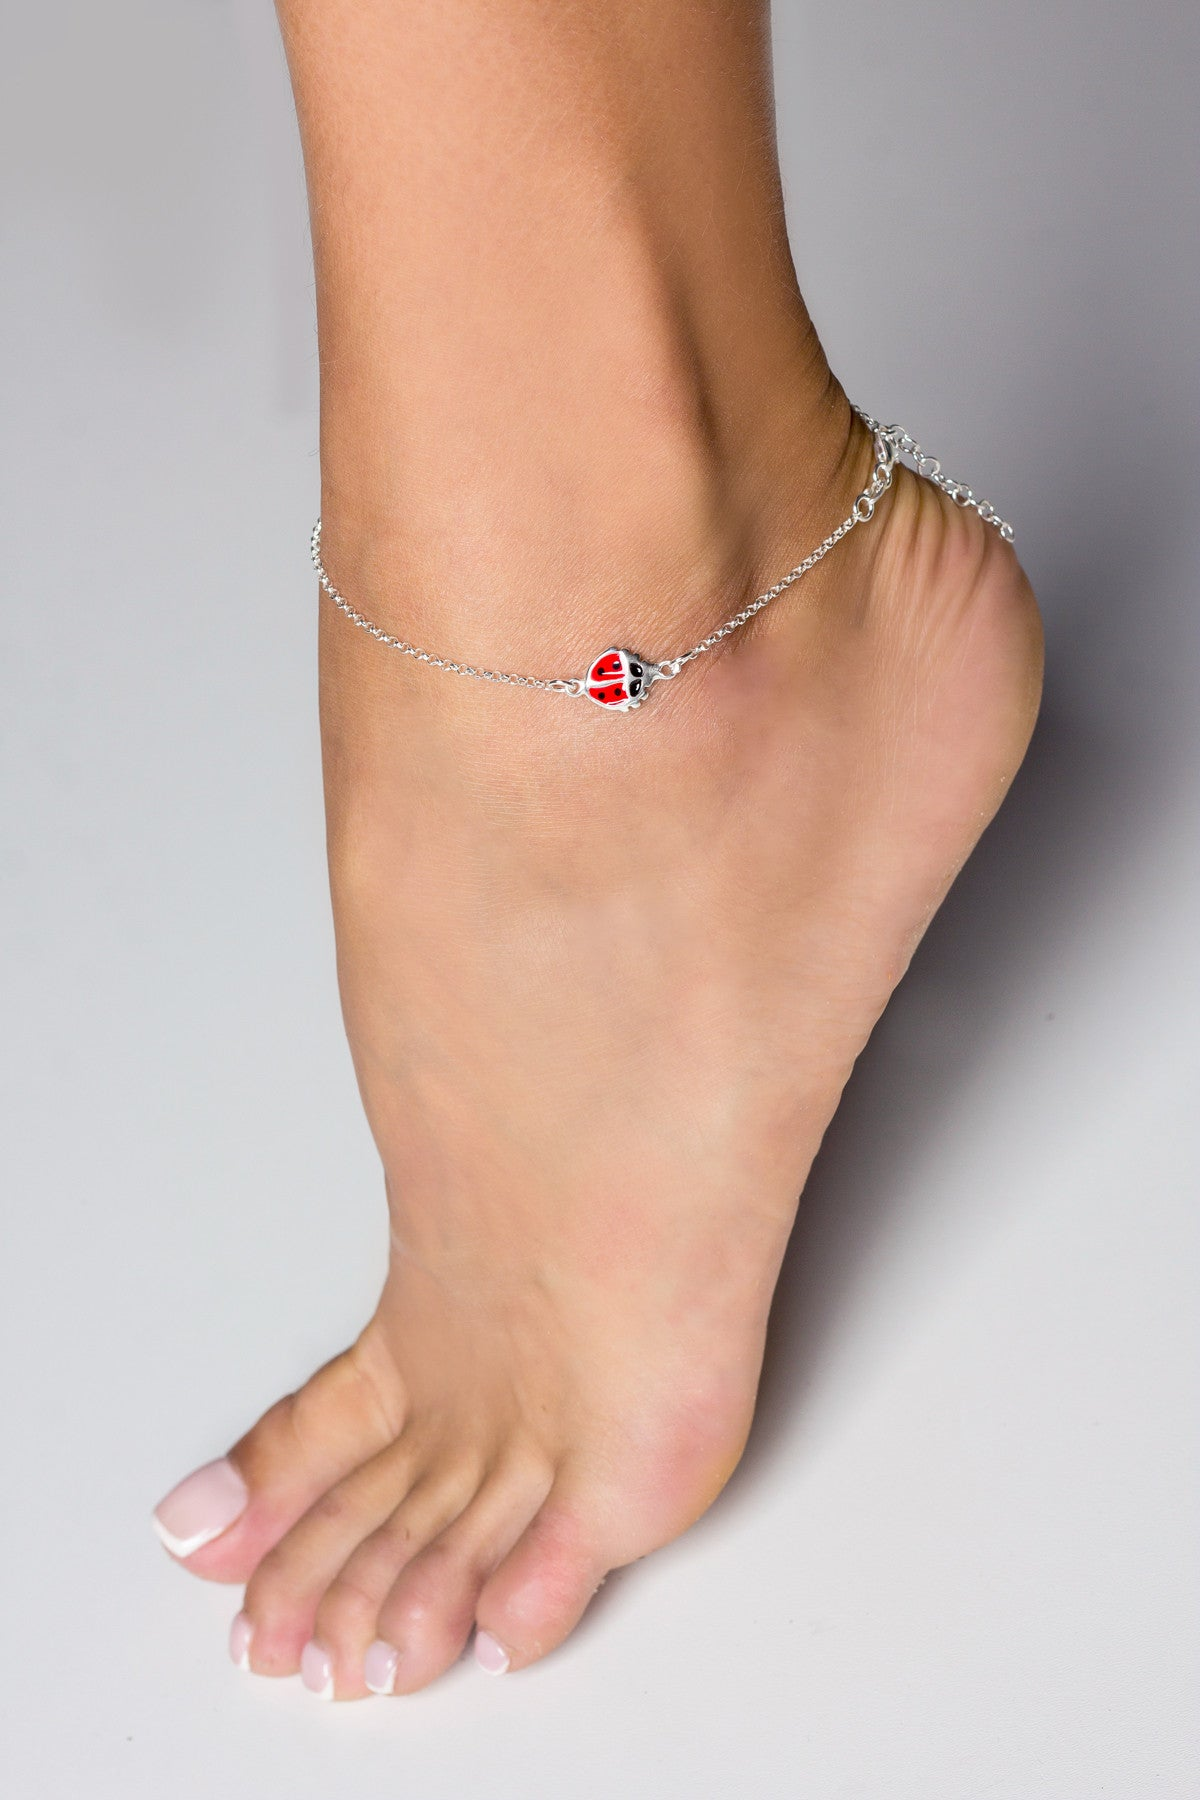 picture s gold ebay tone of ankle anklet charms heart with assorted p shaped bracelet bracelets